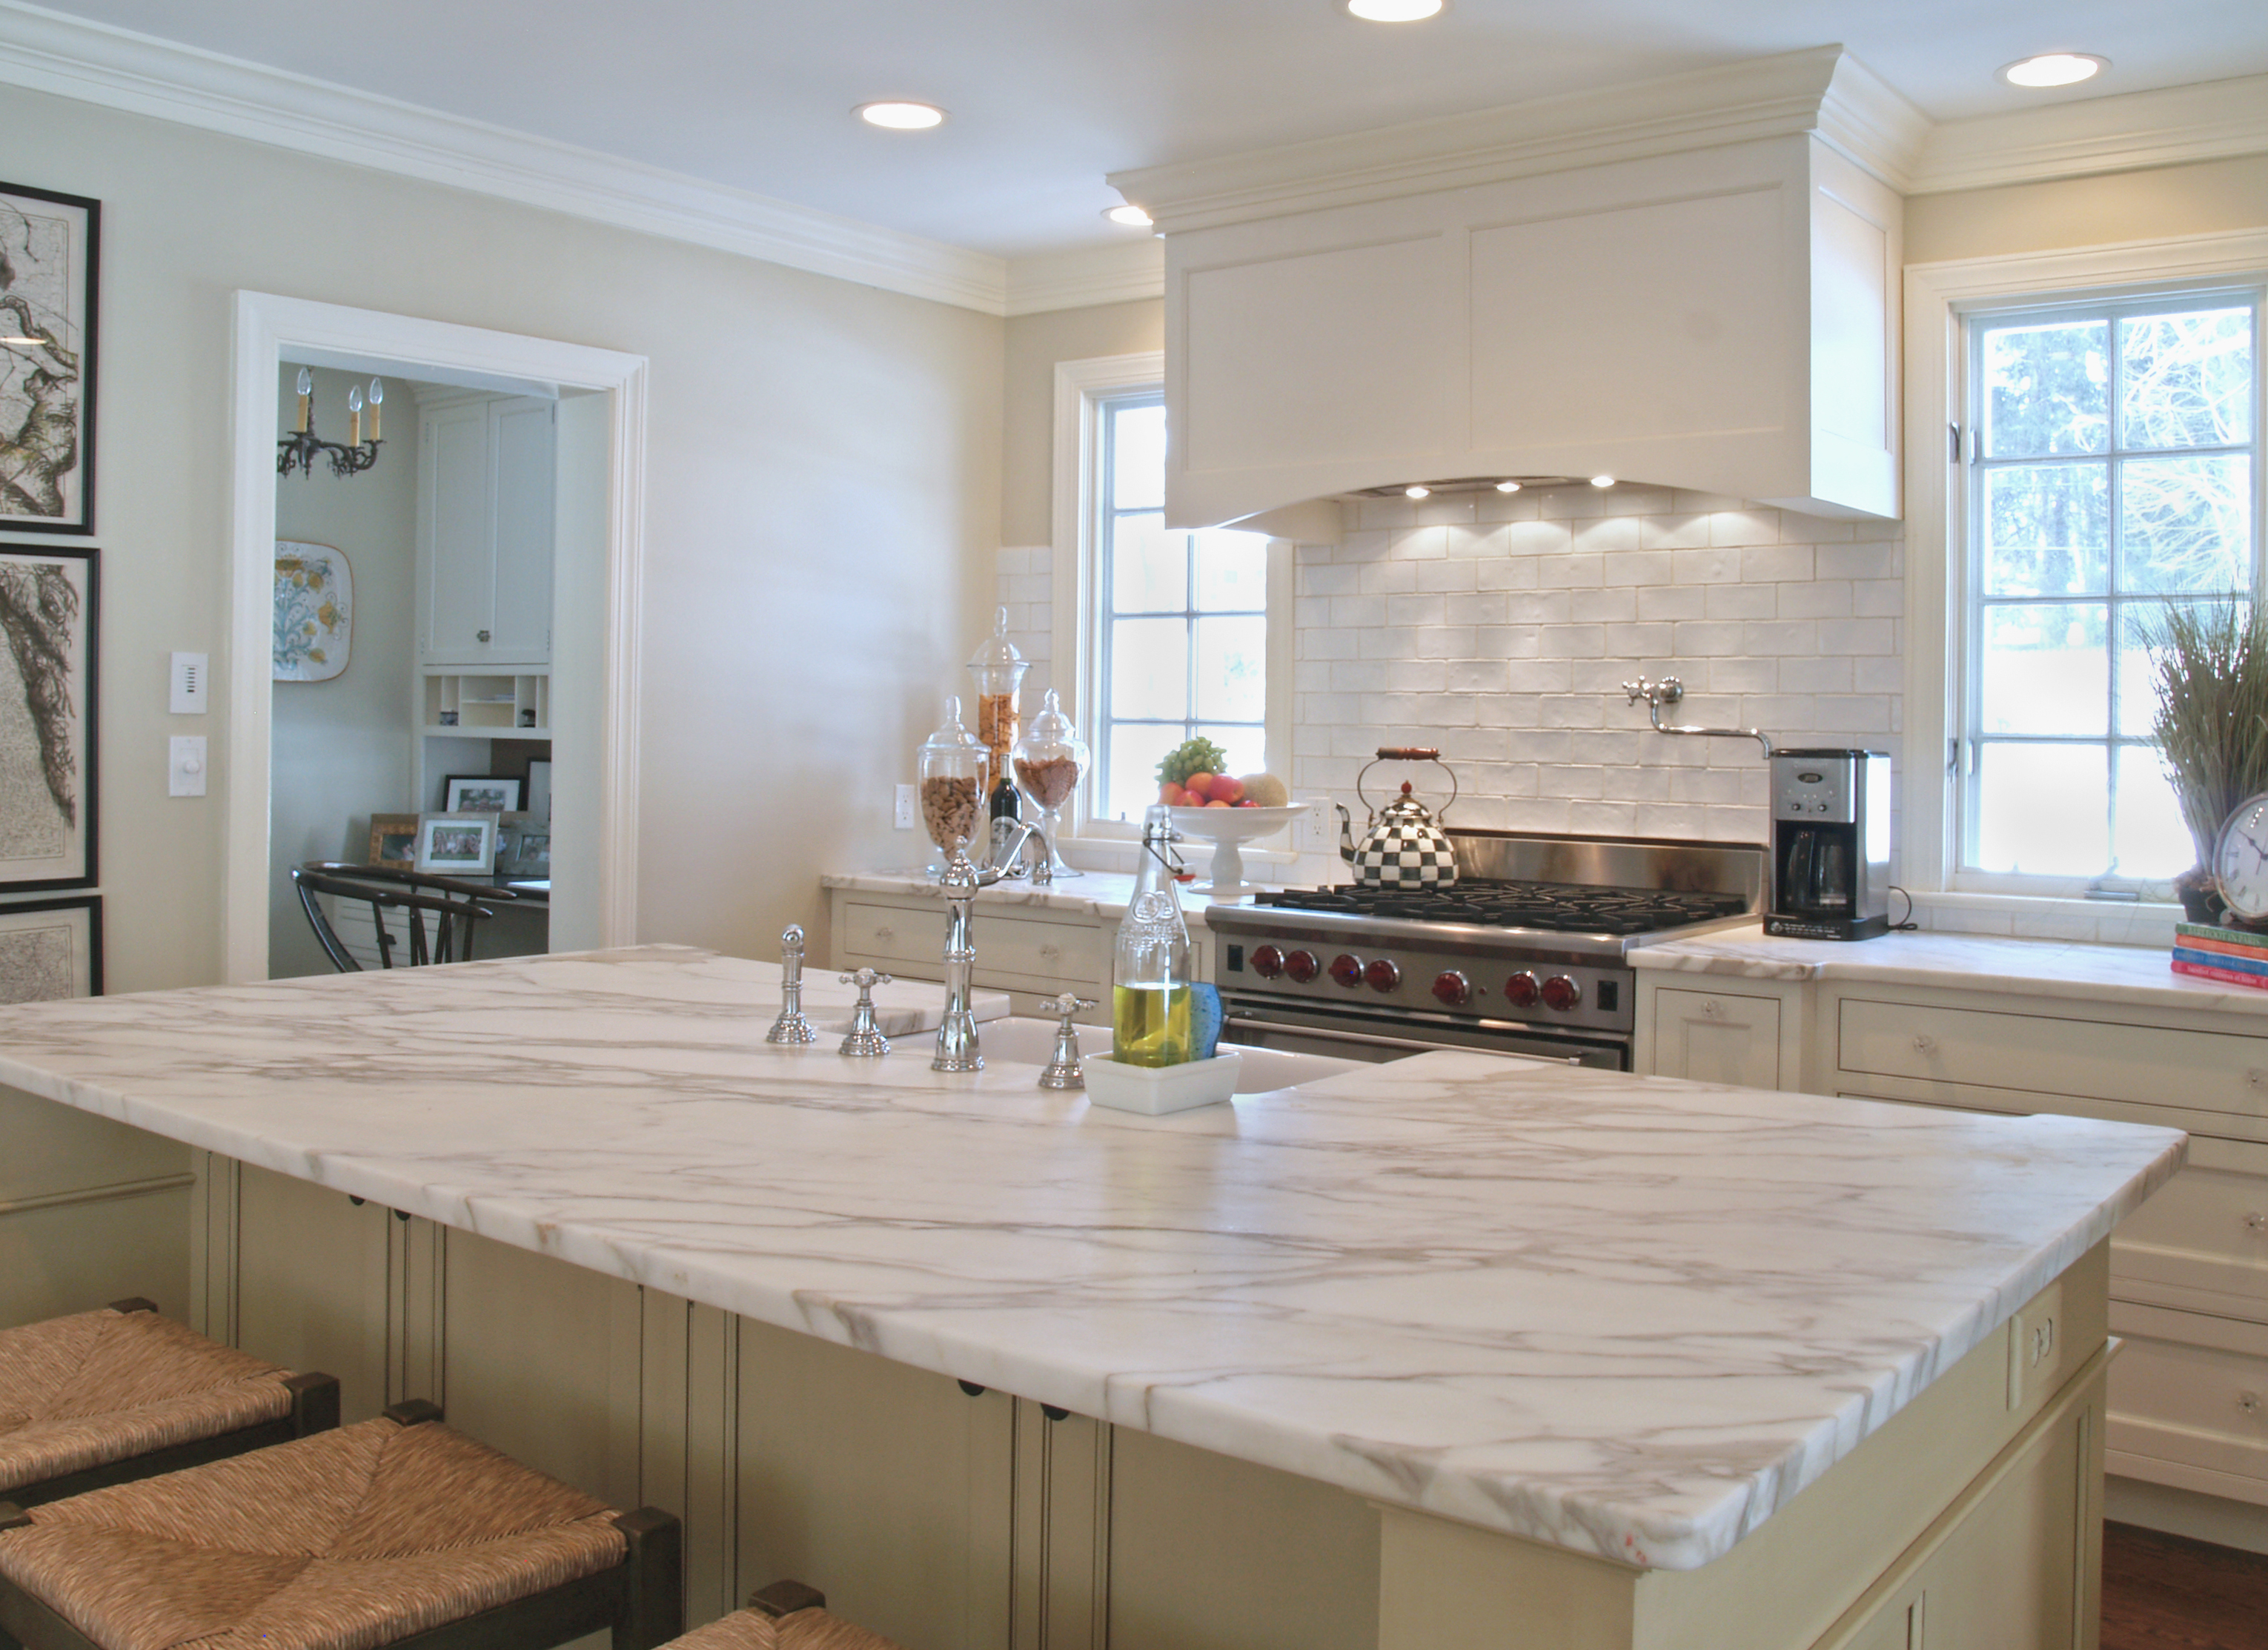 ny of are installed edited granite in who we cost italian marble countertops dsc buffalo